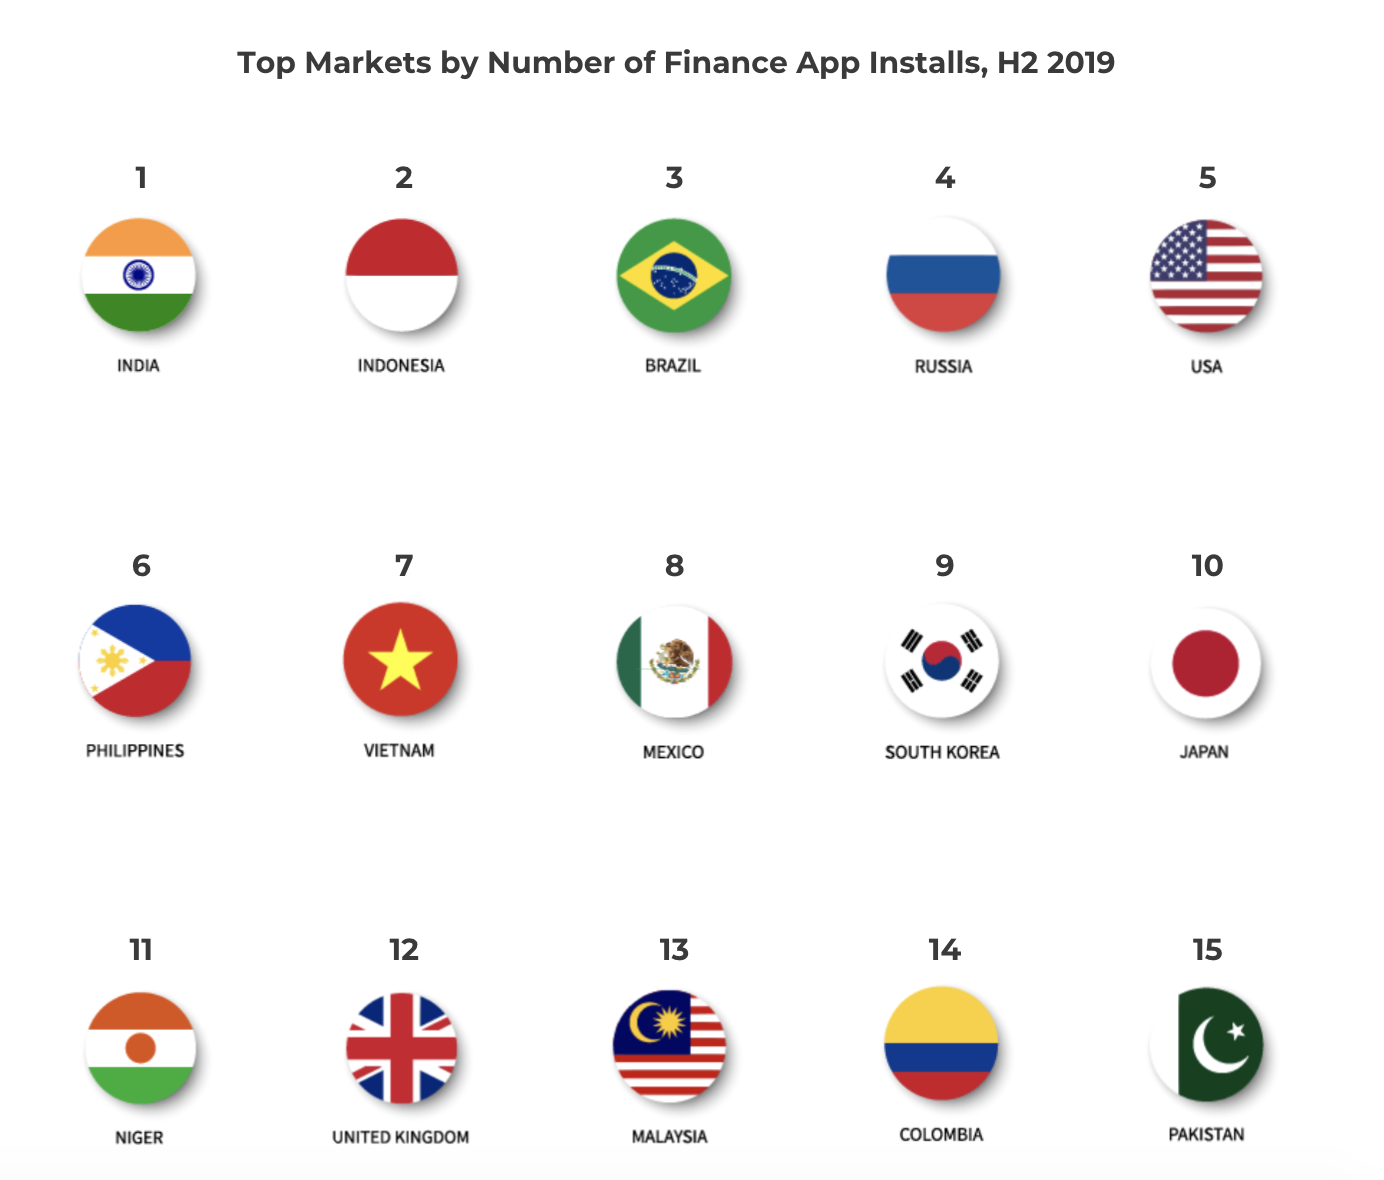 Top Markets by Number of Finance App Installs, H2 2019